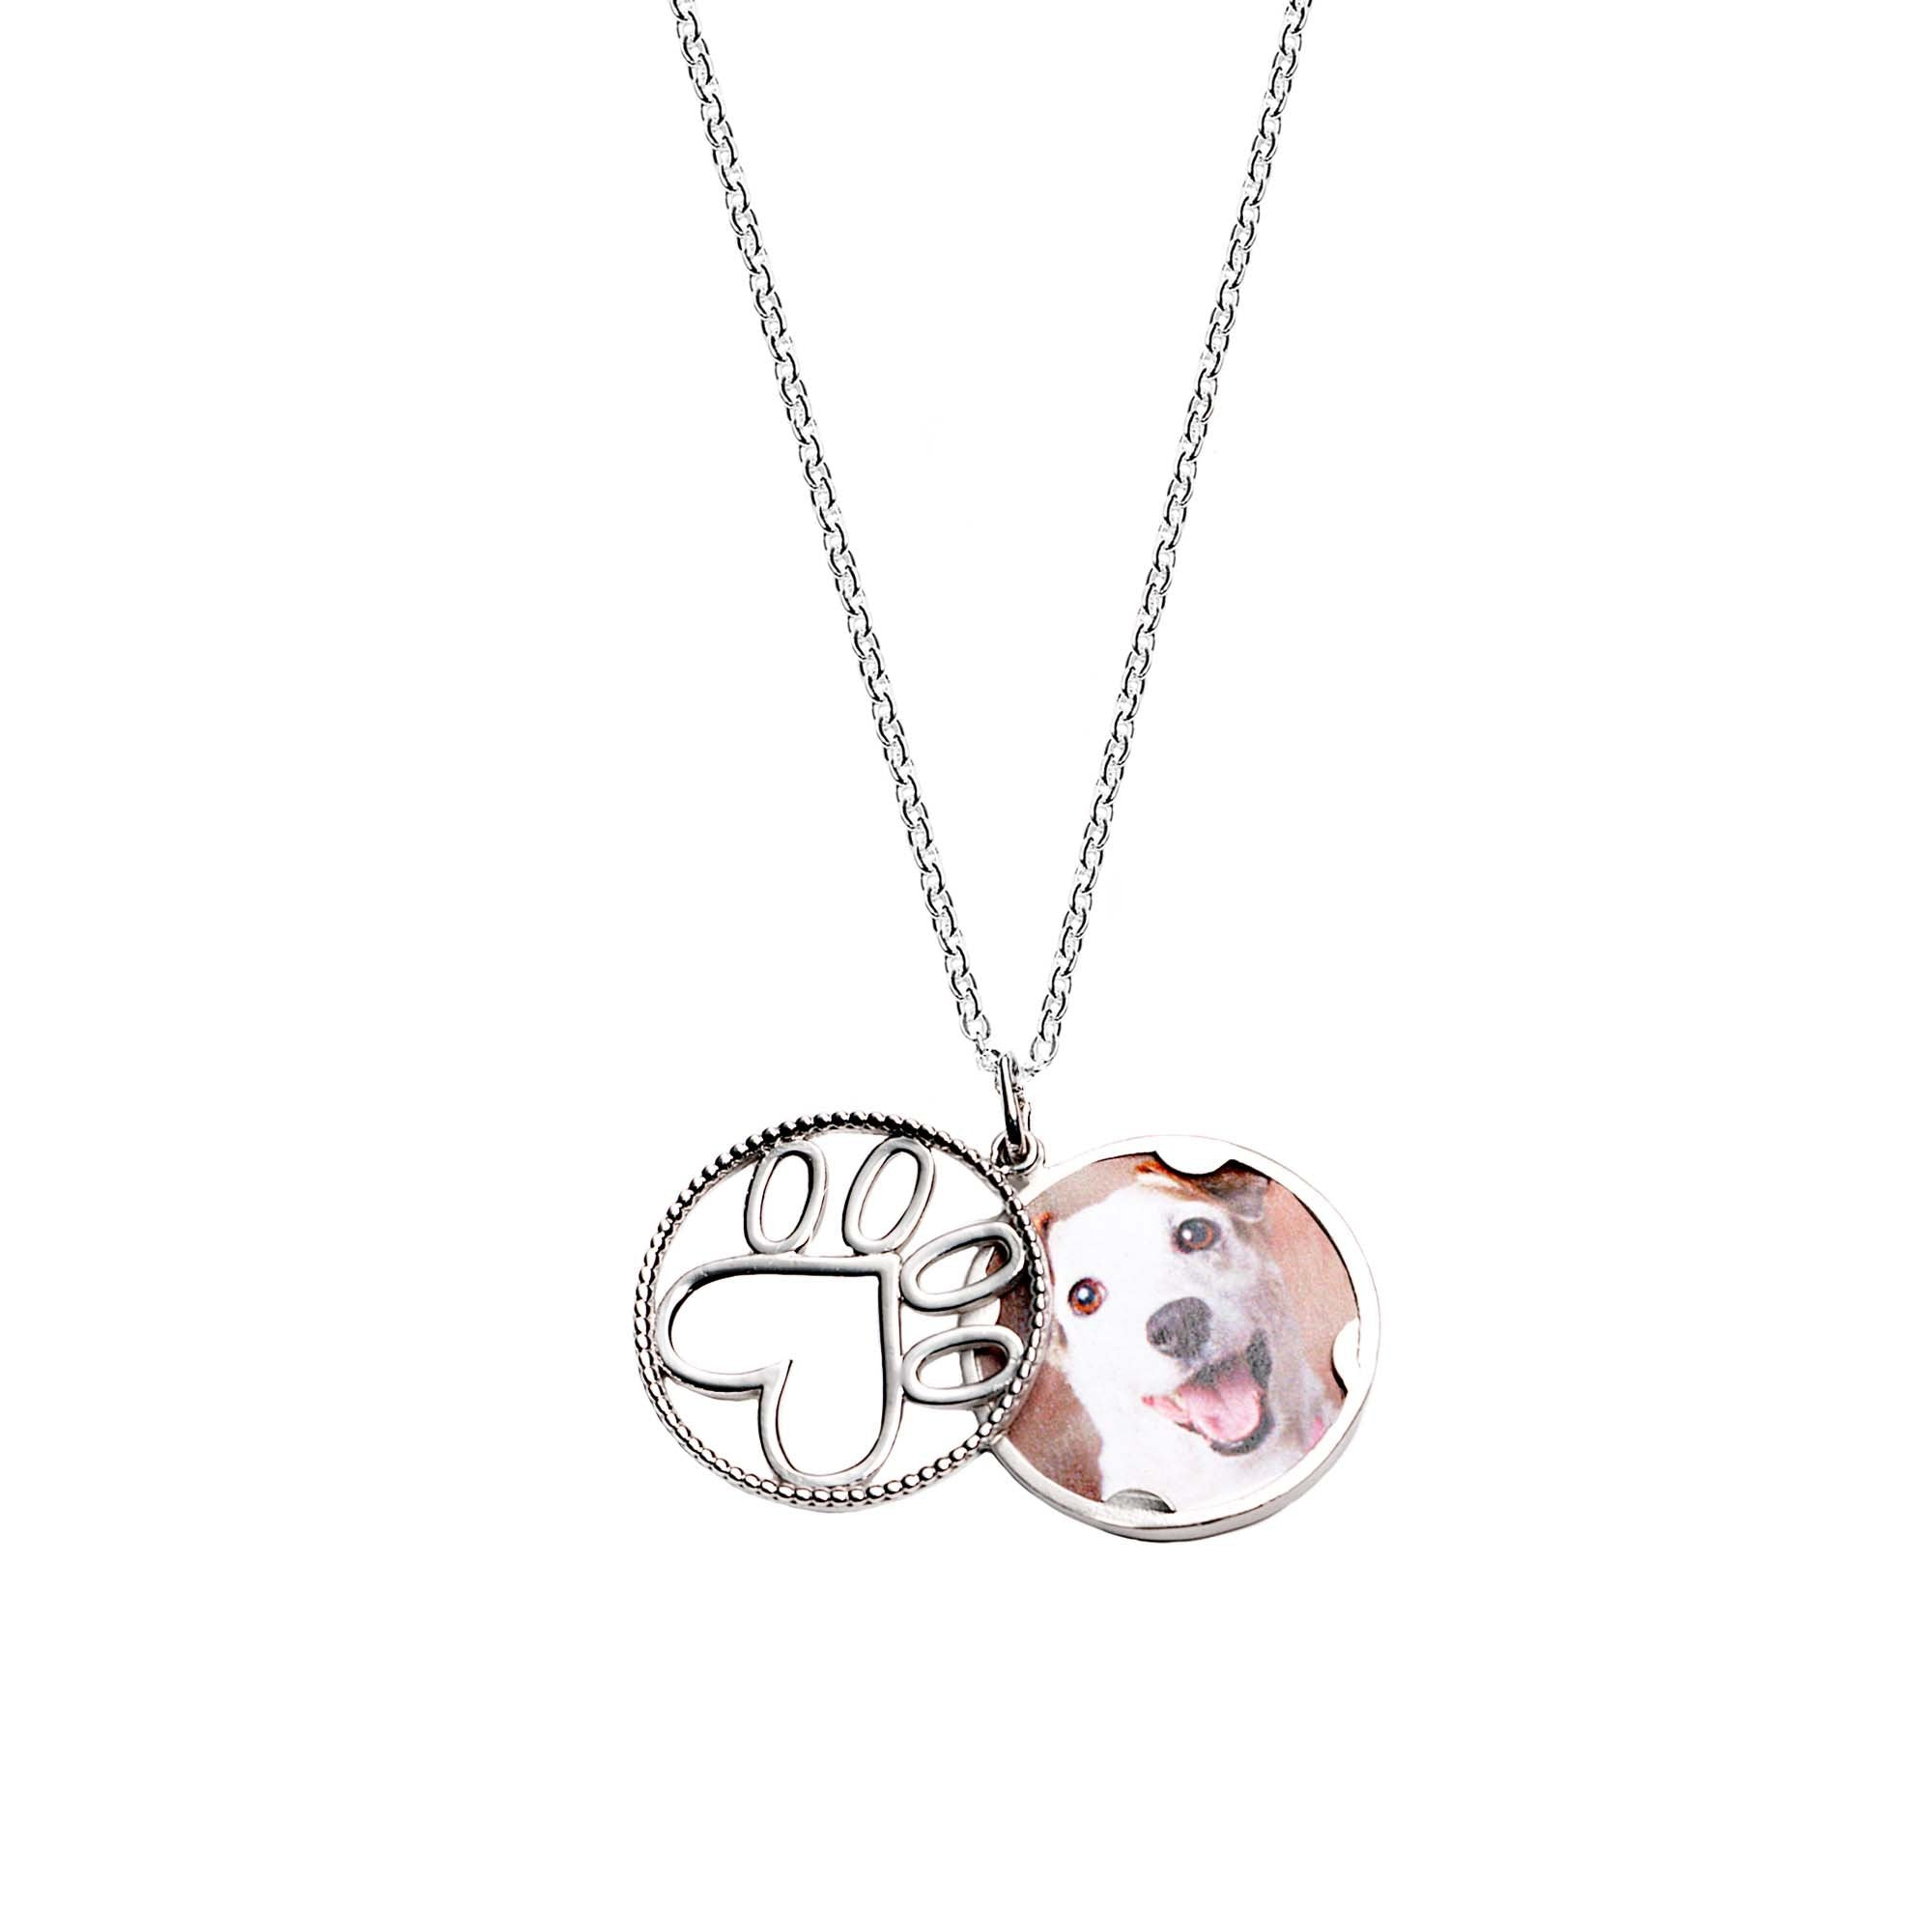 Our Cause for Paws Sterling Silver Open Locket Pendant Necklace